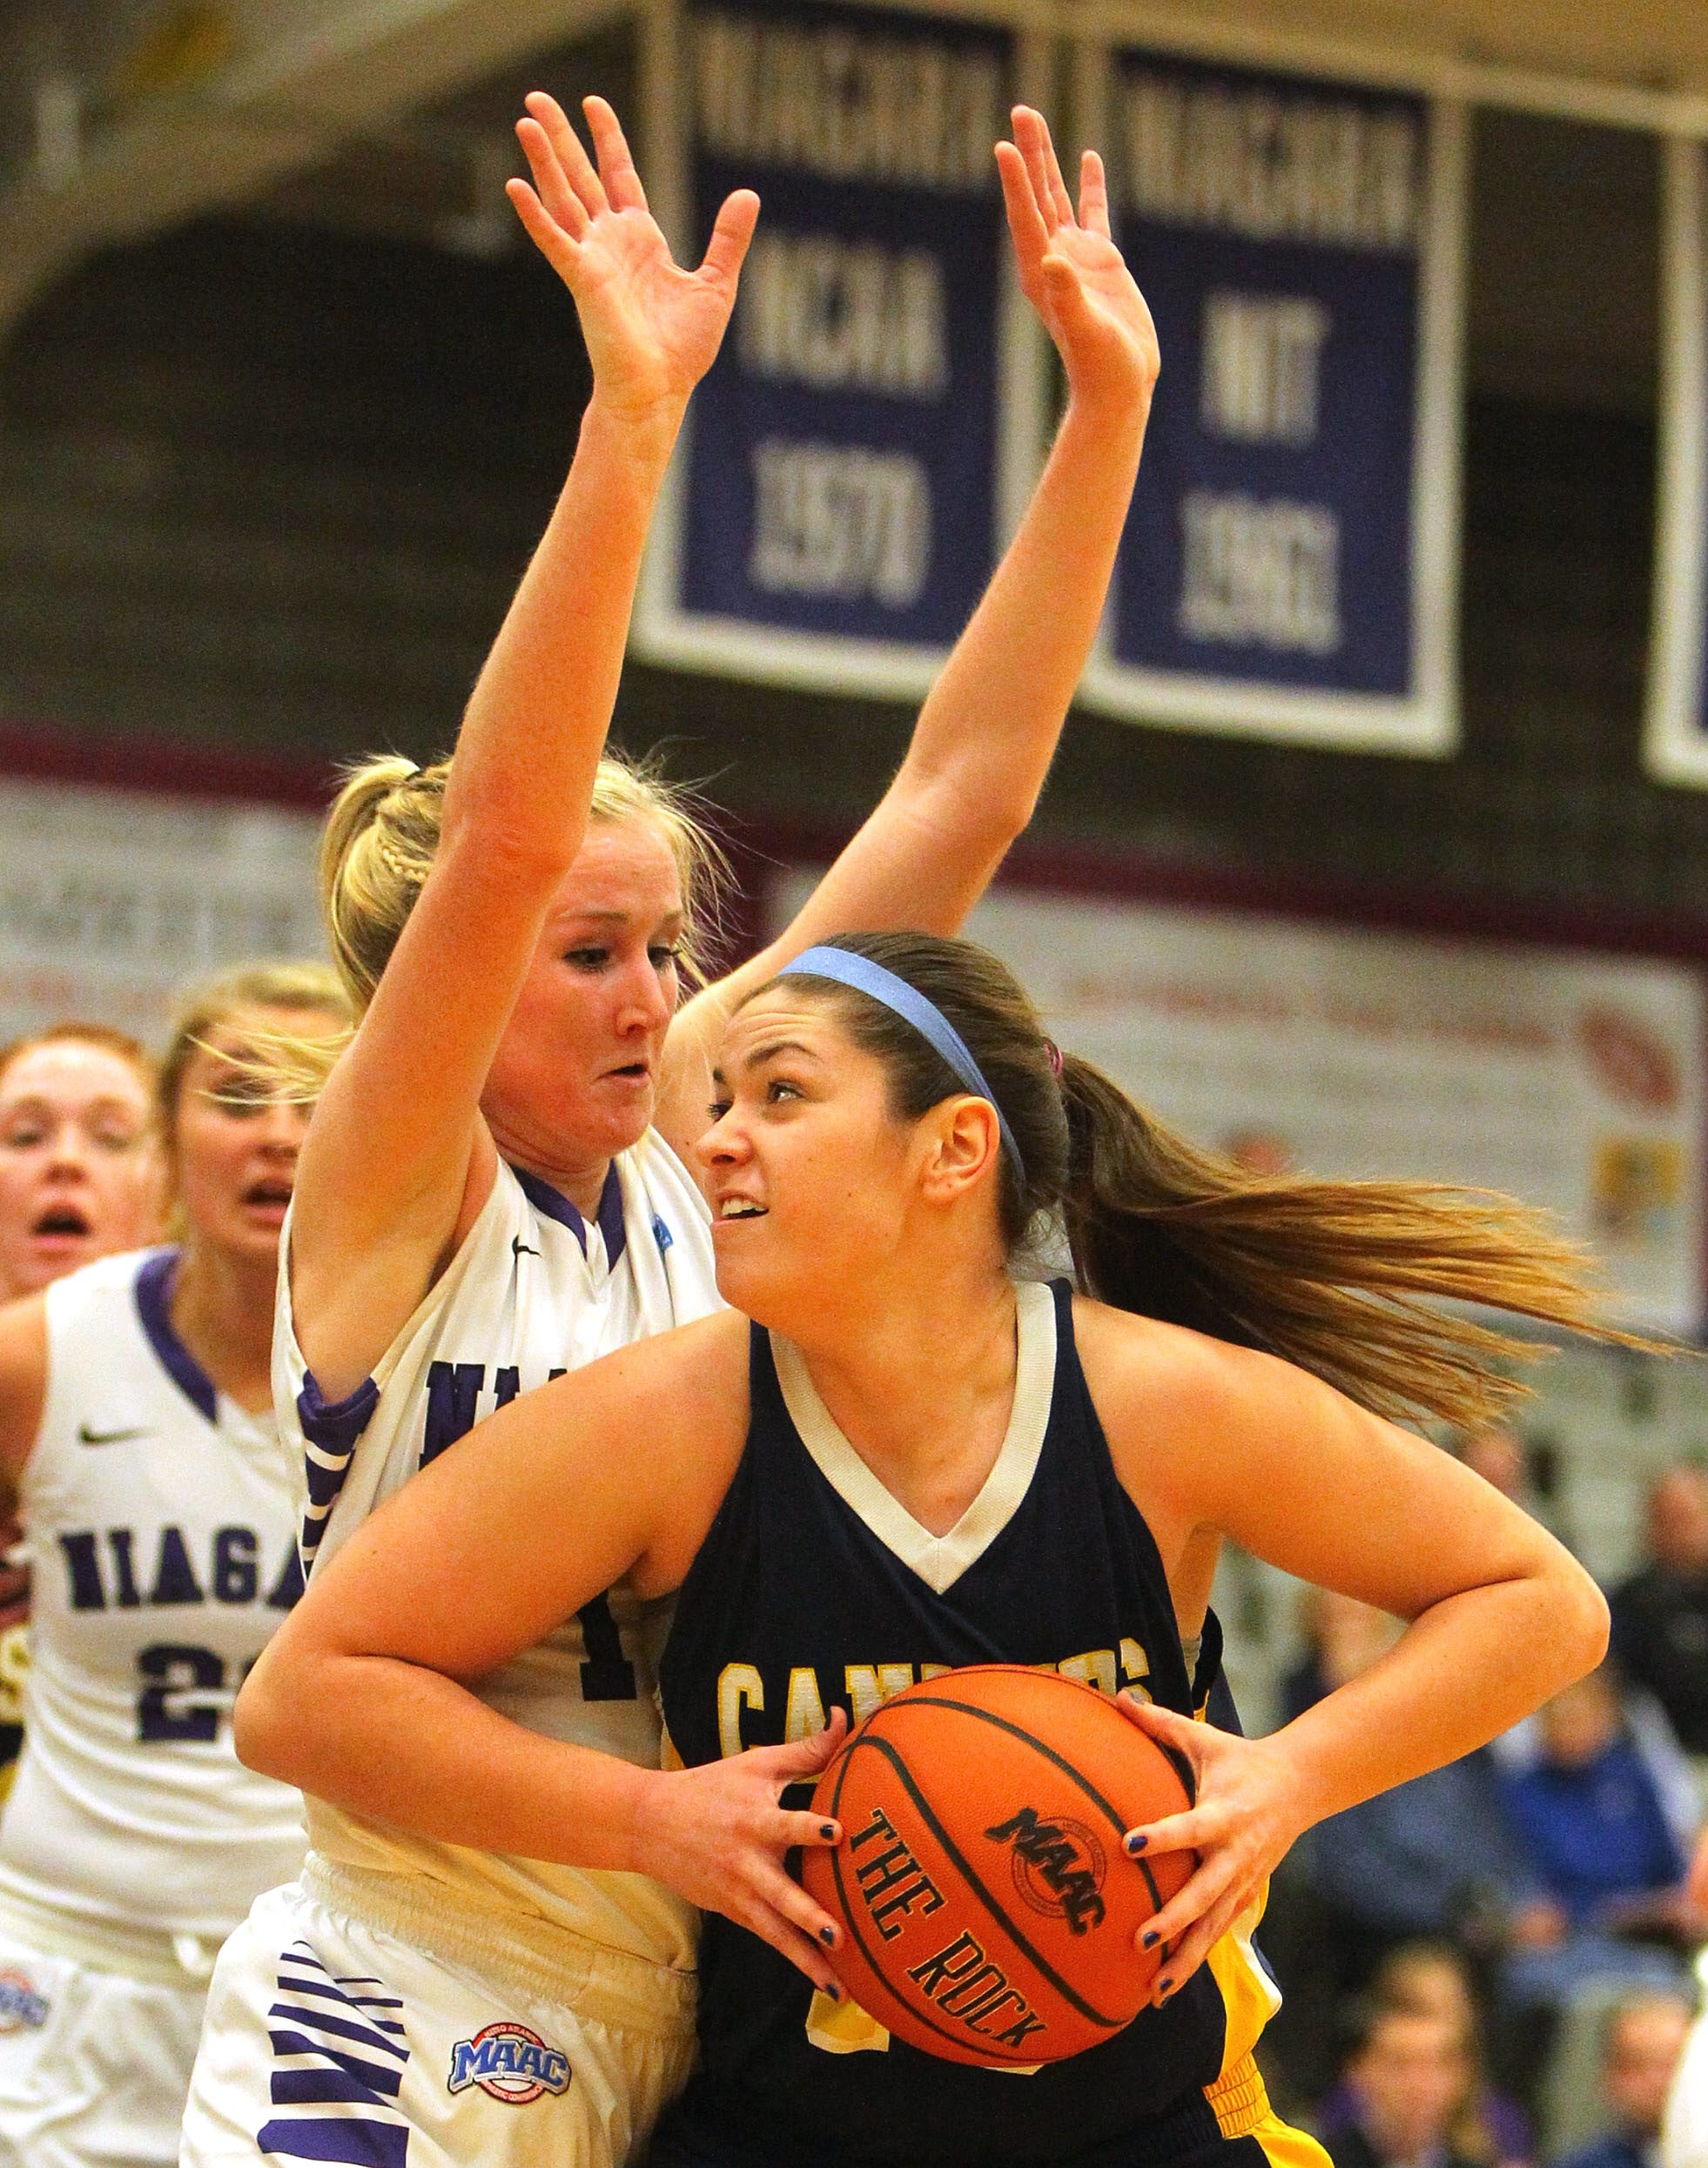 Niagara's Meghan McGuinness had a big night offensively but also shows some defense on Canisius' Lauren D'Hont.